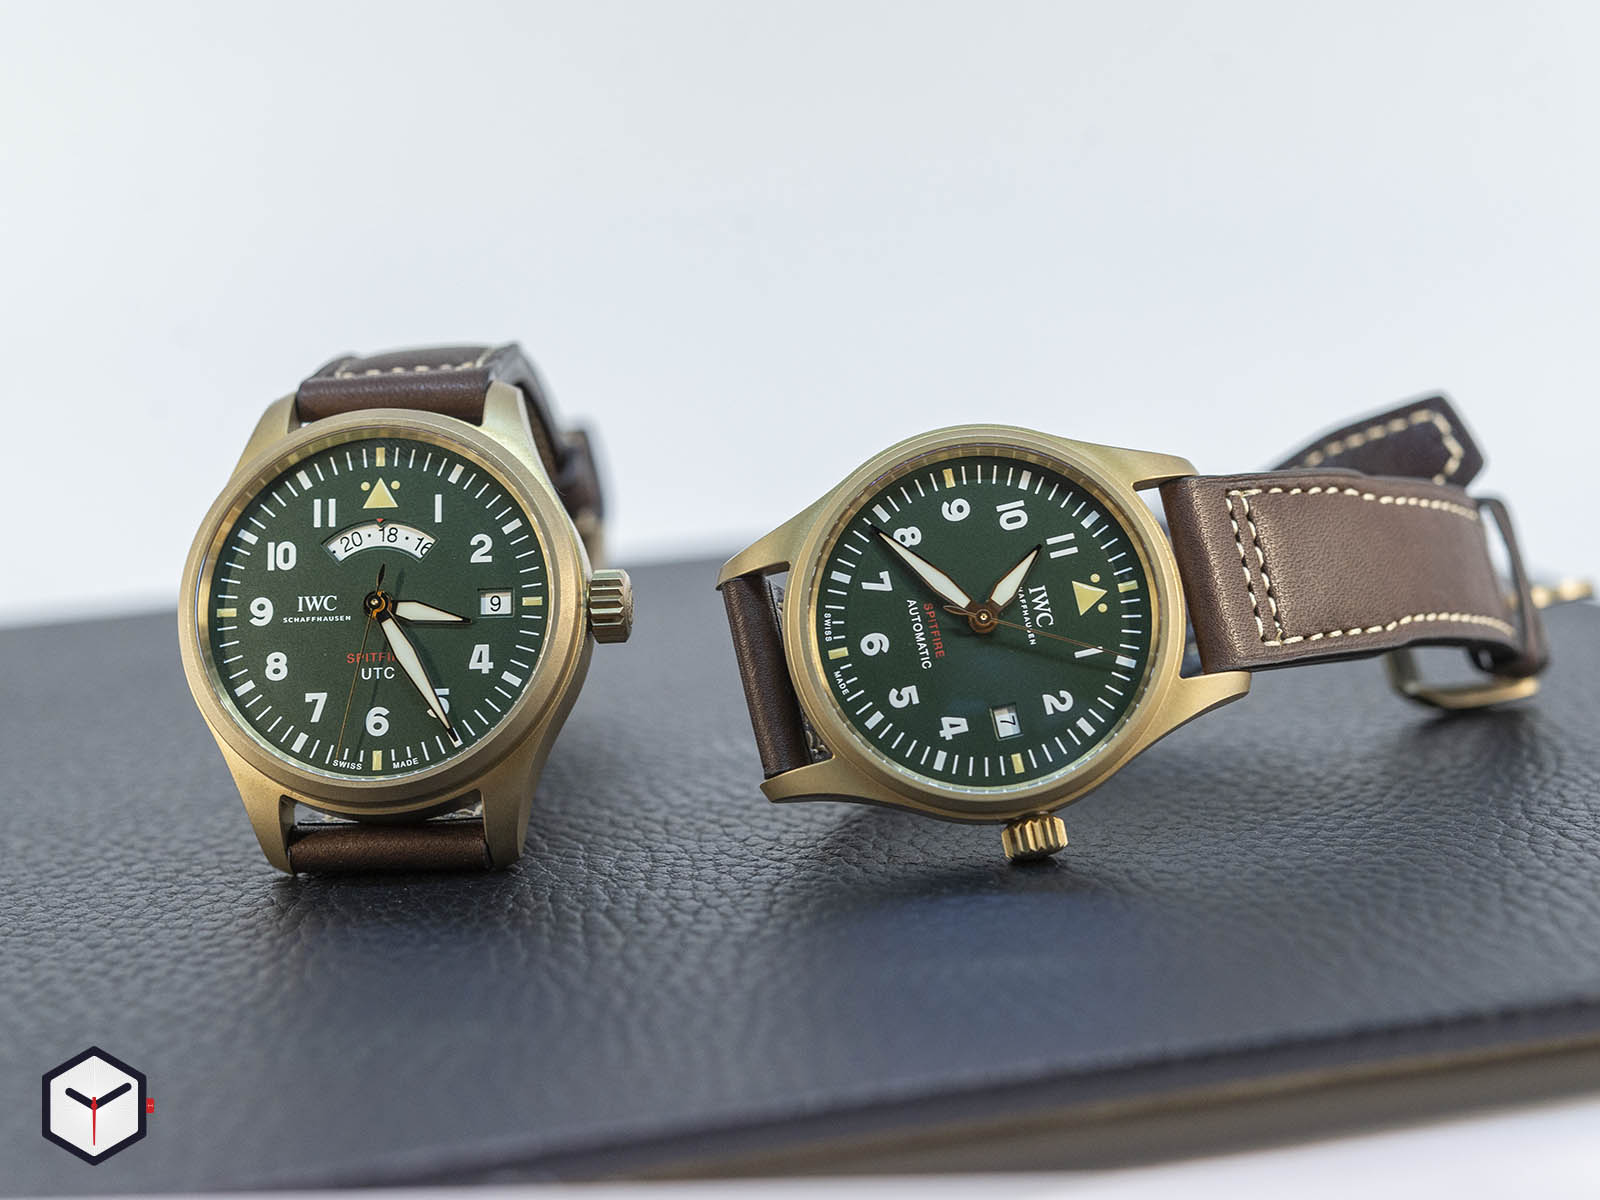 iw327101-iwc-pilot-s-watch-utc-spitfire-edition-mj271-1.jpg